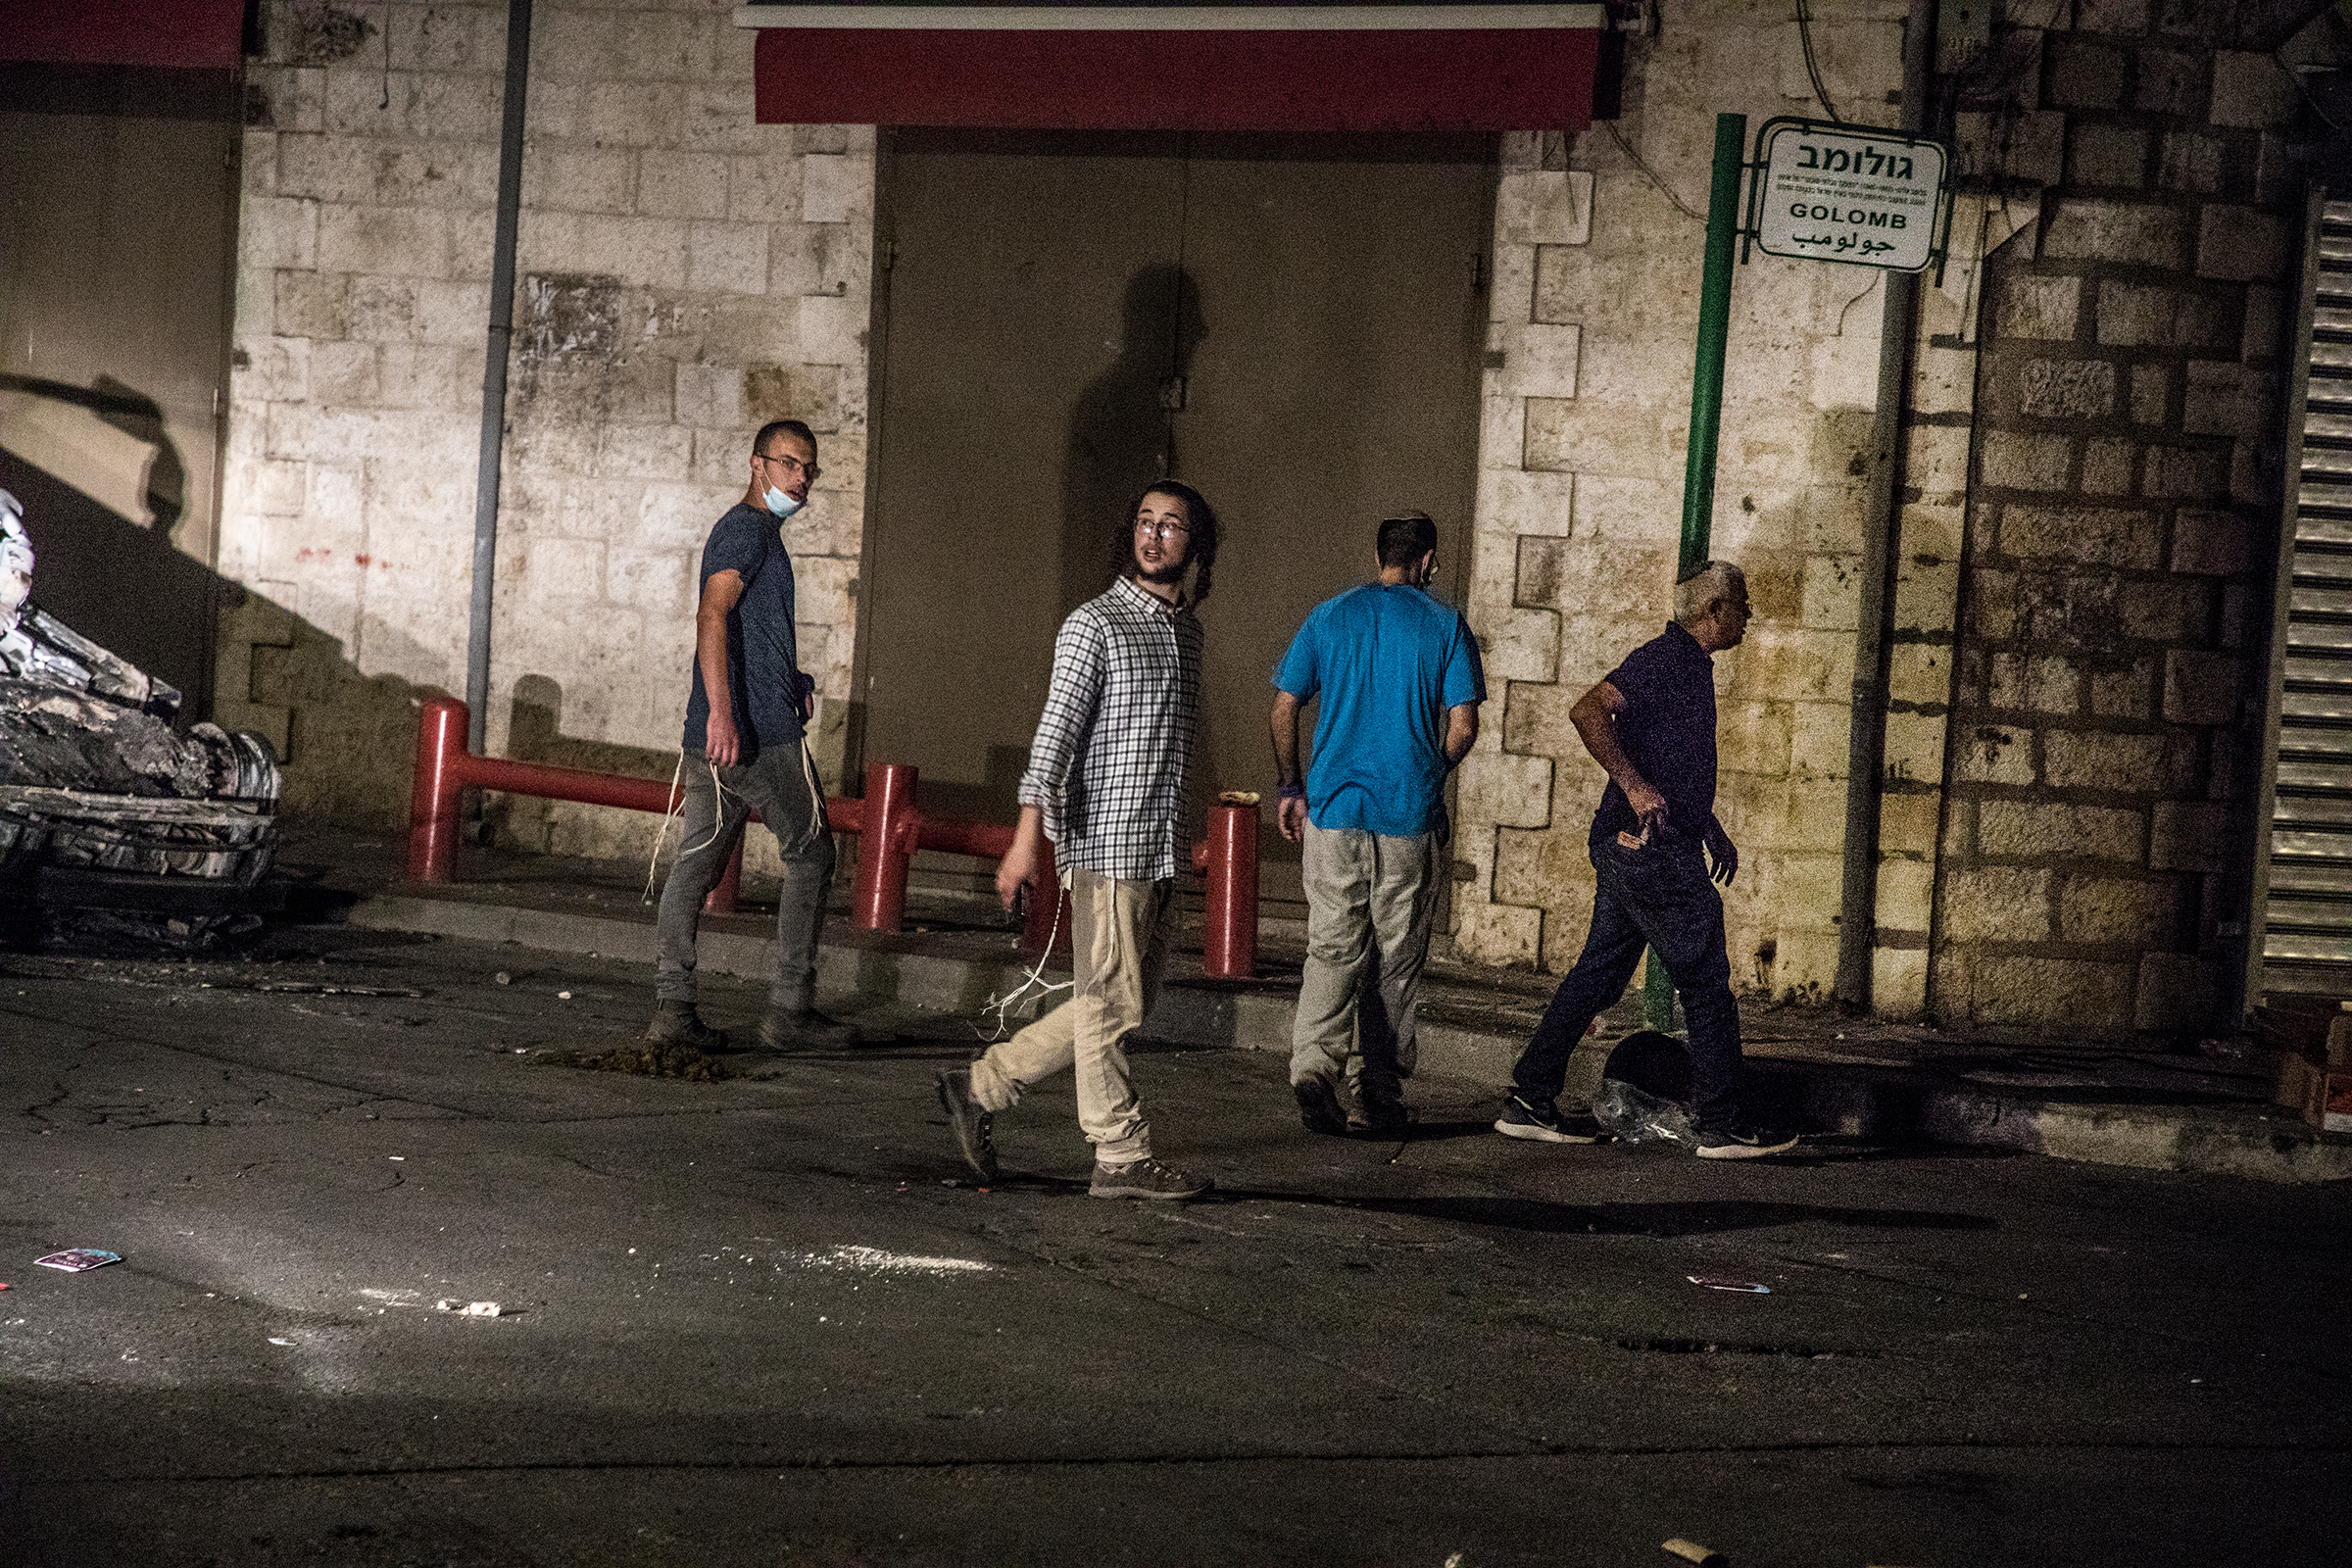 Young Jewish men from a group comprising settlers and extreme right-wing activists, mostly armed, try to approach the downtown mosque in the mixed city of Lod, Israel, on May 12.